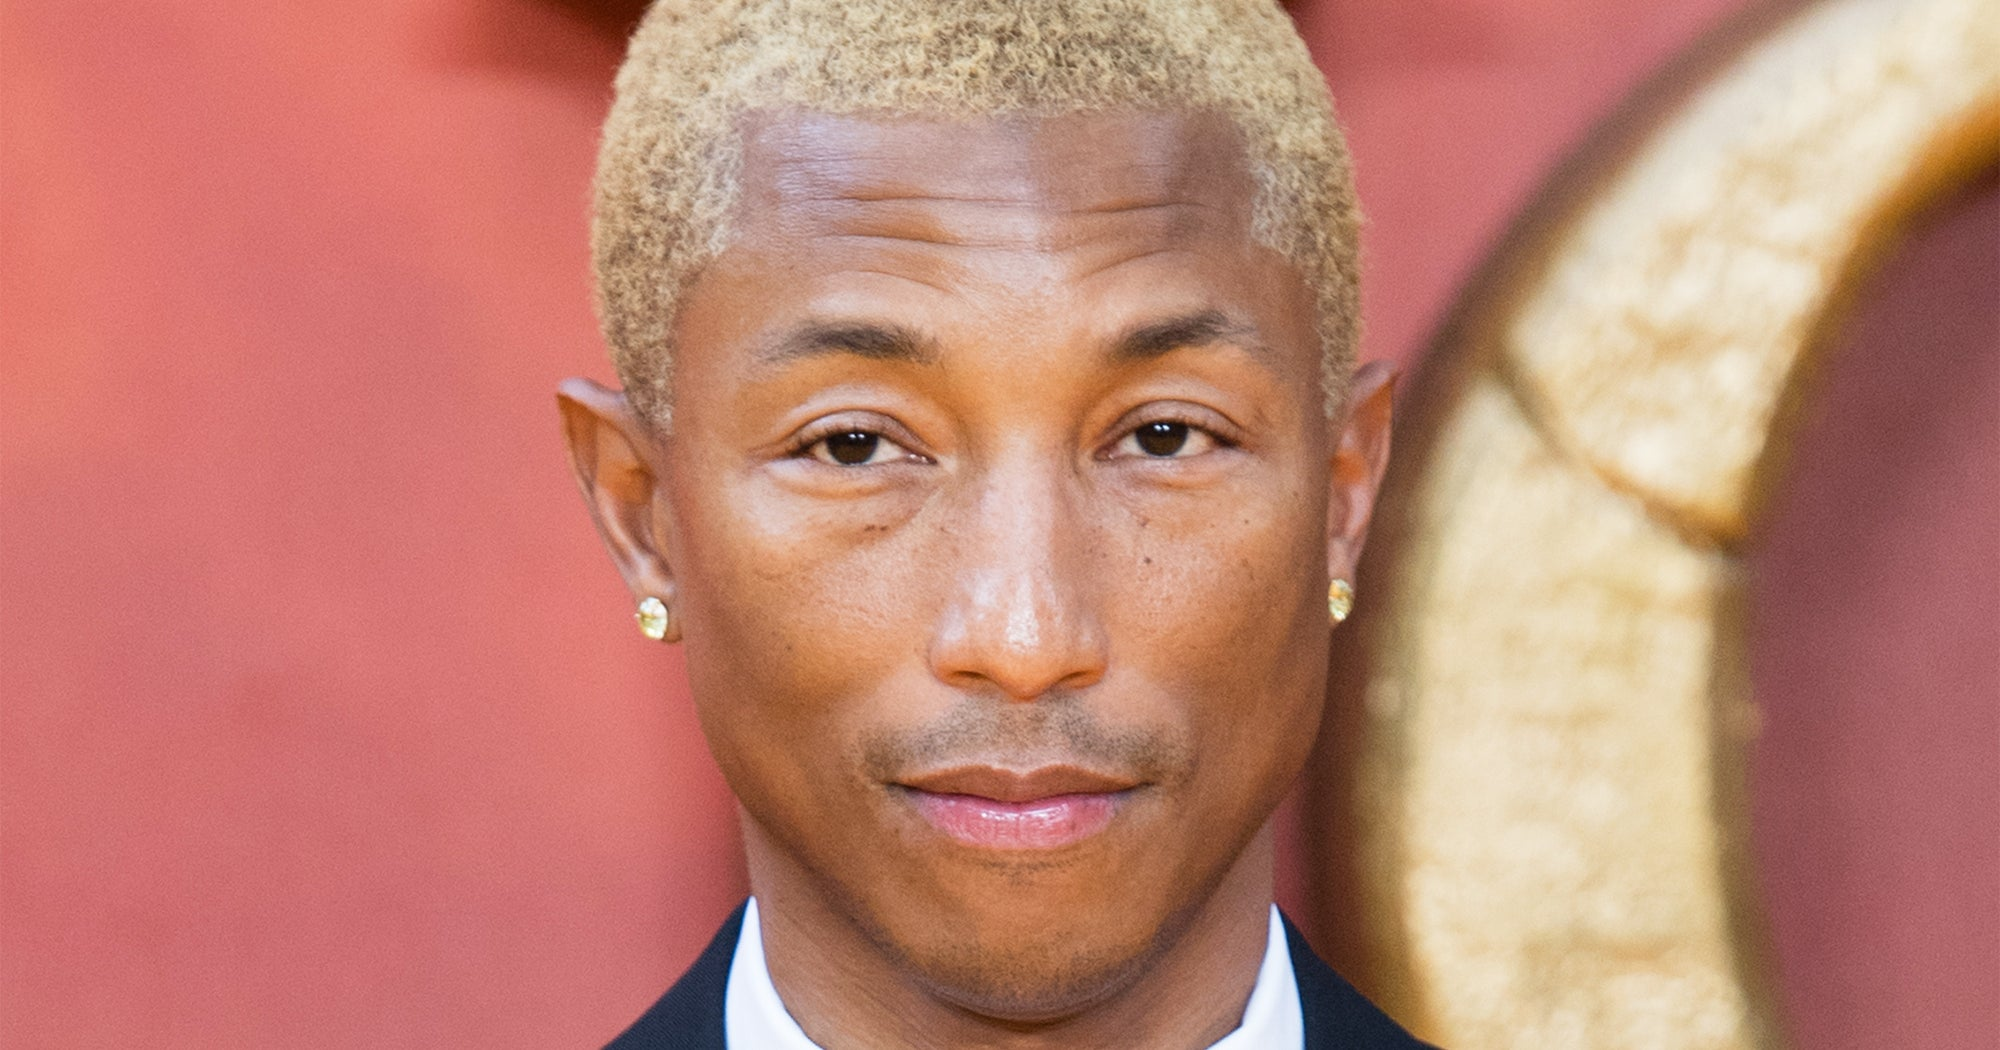 Pharrell Reveals How Blurred Lines Taught Him About Chauvinism